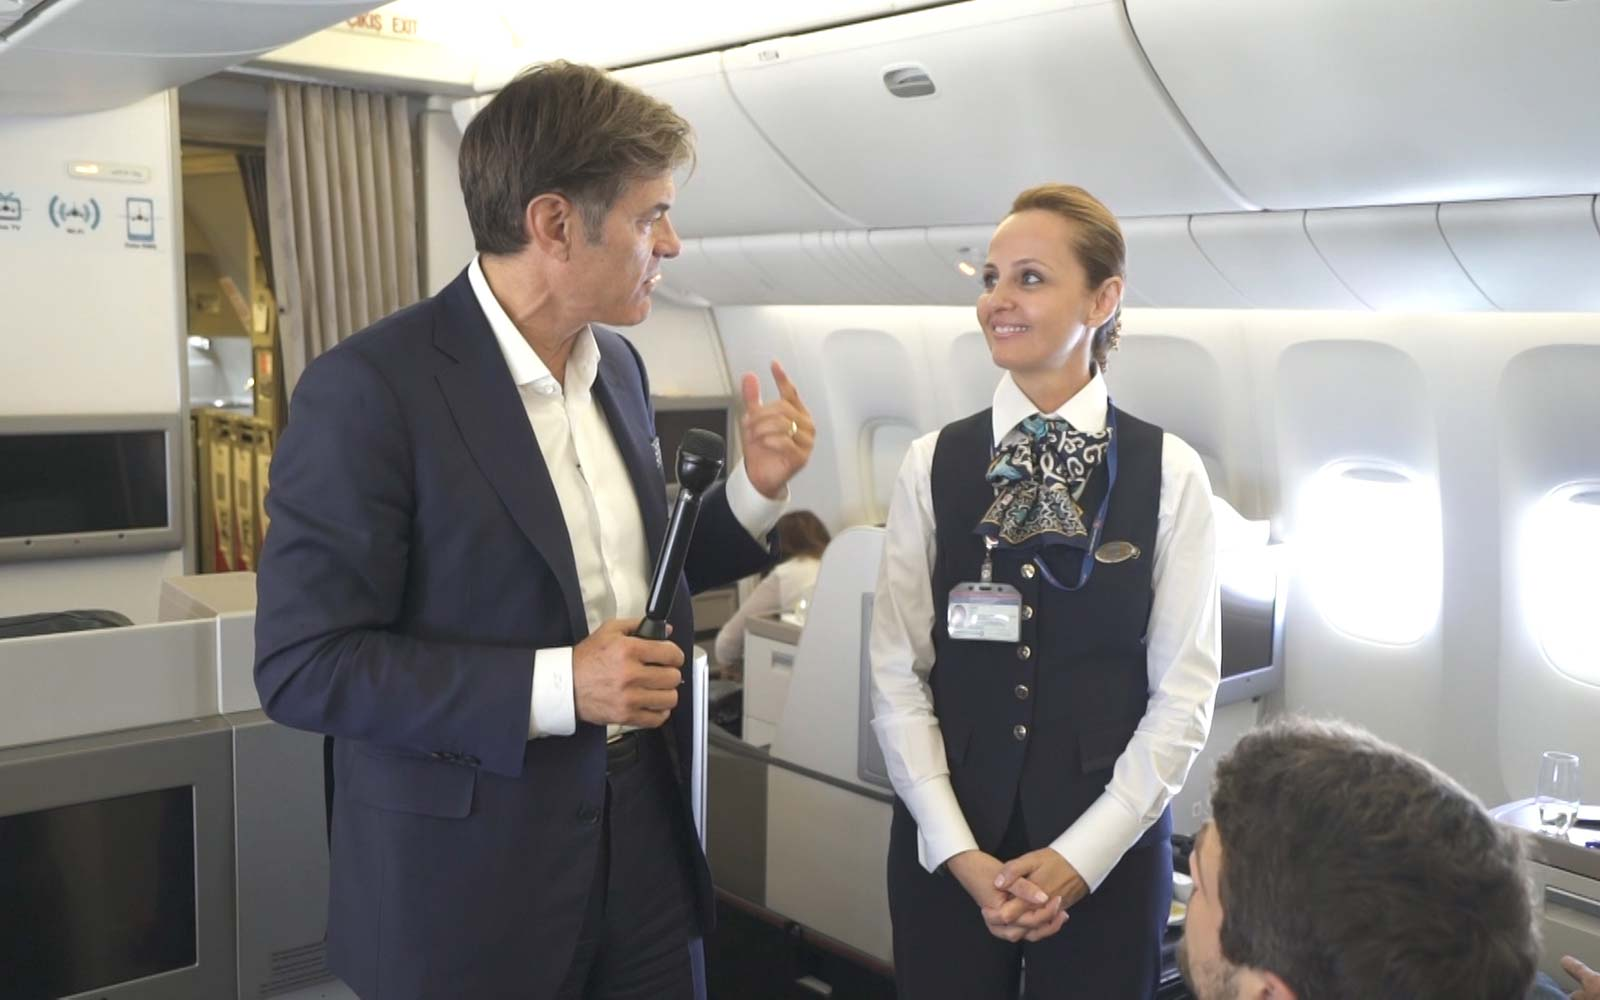 Dr Oz Show In-Flight Turkish Airlines tv segment